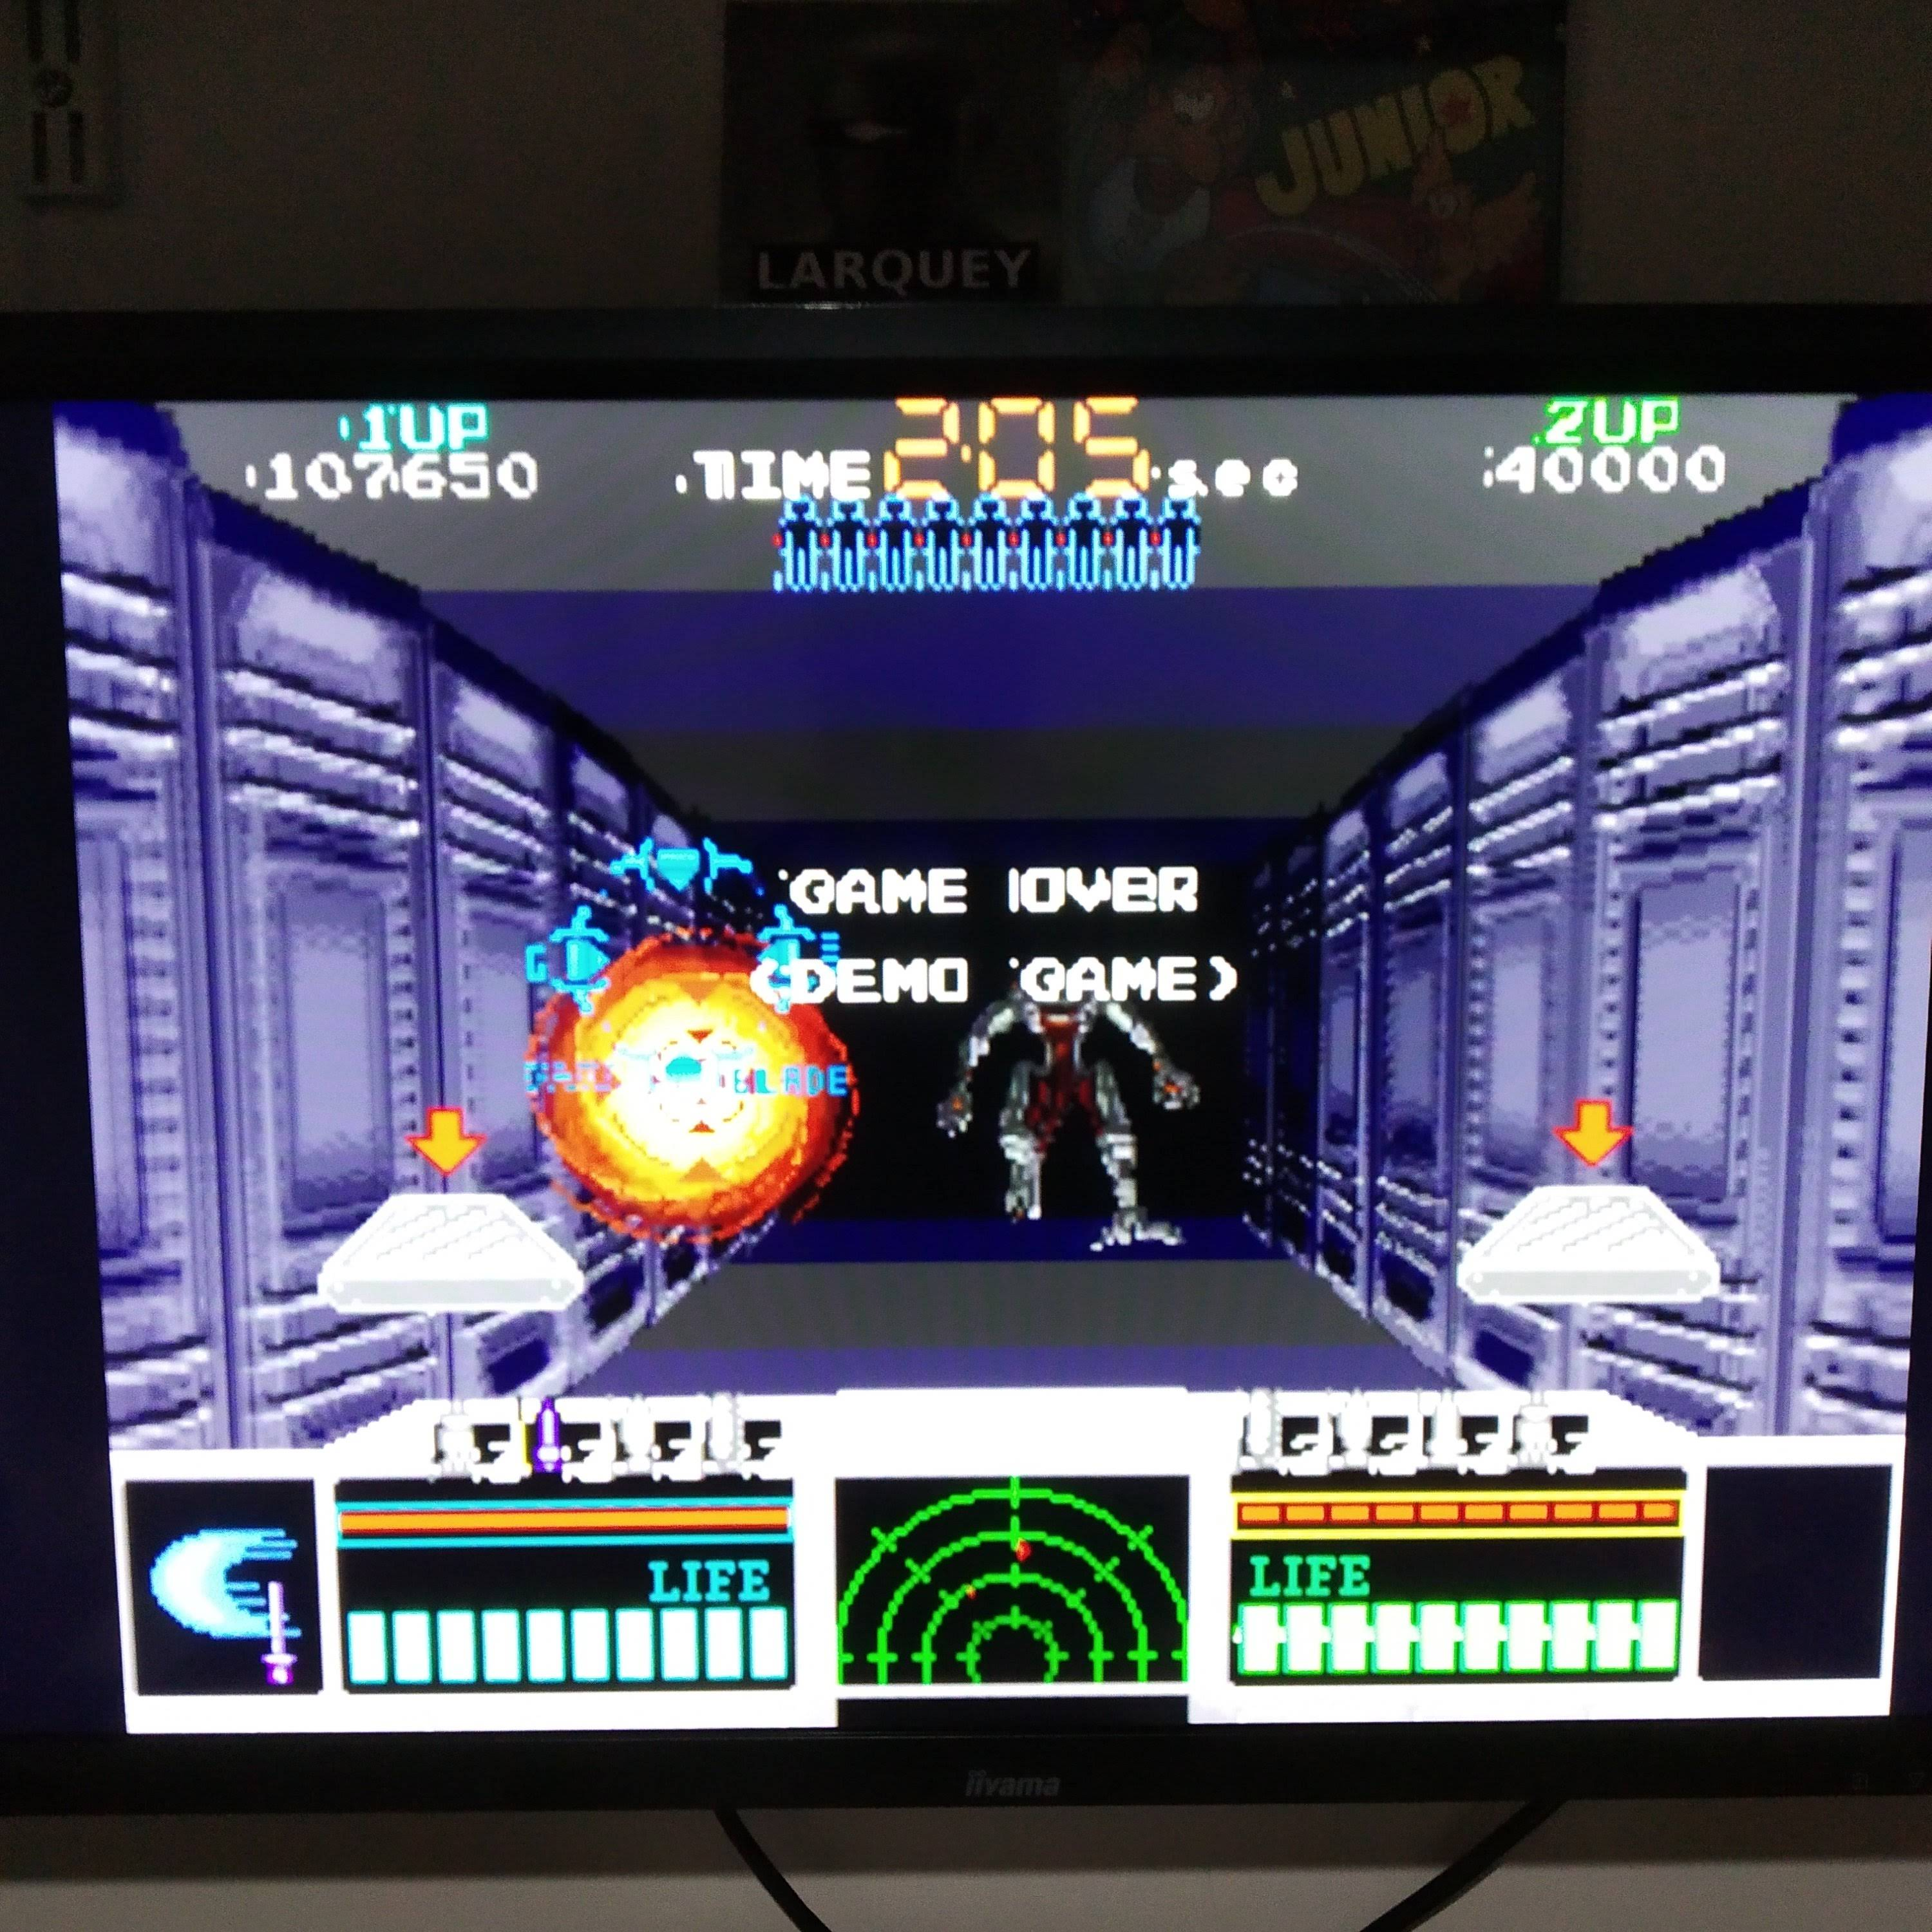 Larquey: Taito Legends: Space Gun [Easy] (Playstation 2 Emulated) 107,650 points on 2020-08-09 03:25:59